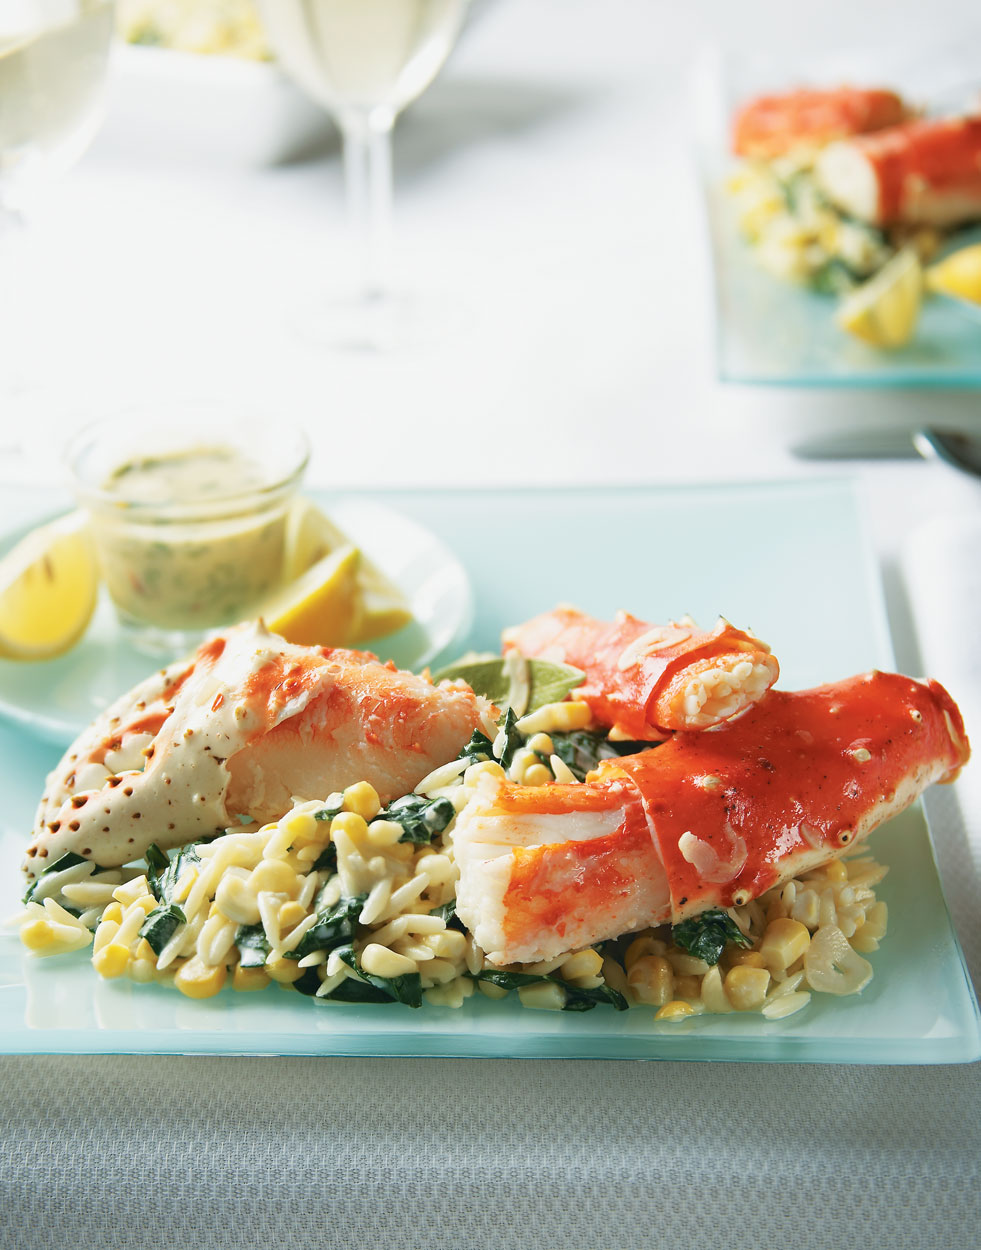 King Crab Legs & Creamy Orzotto